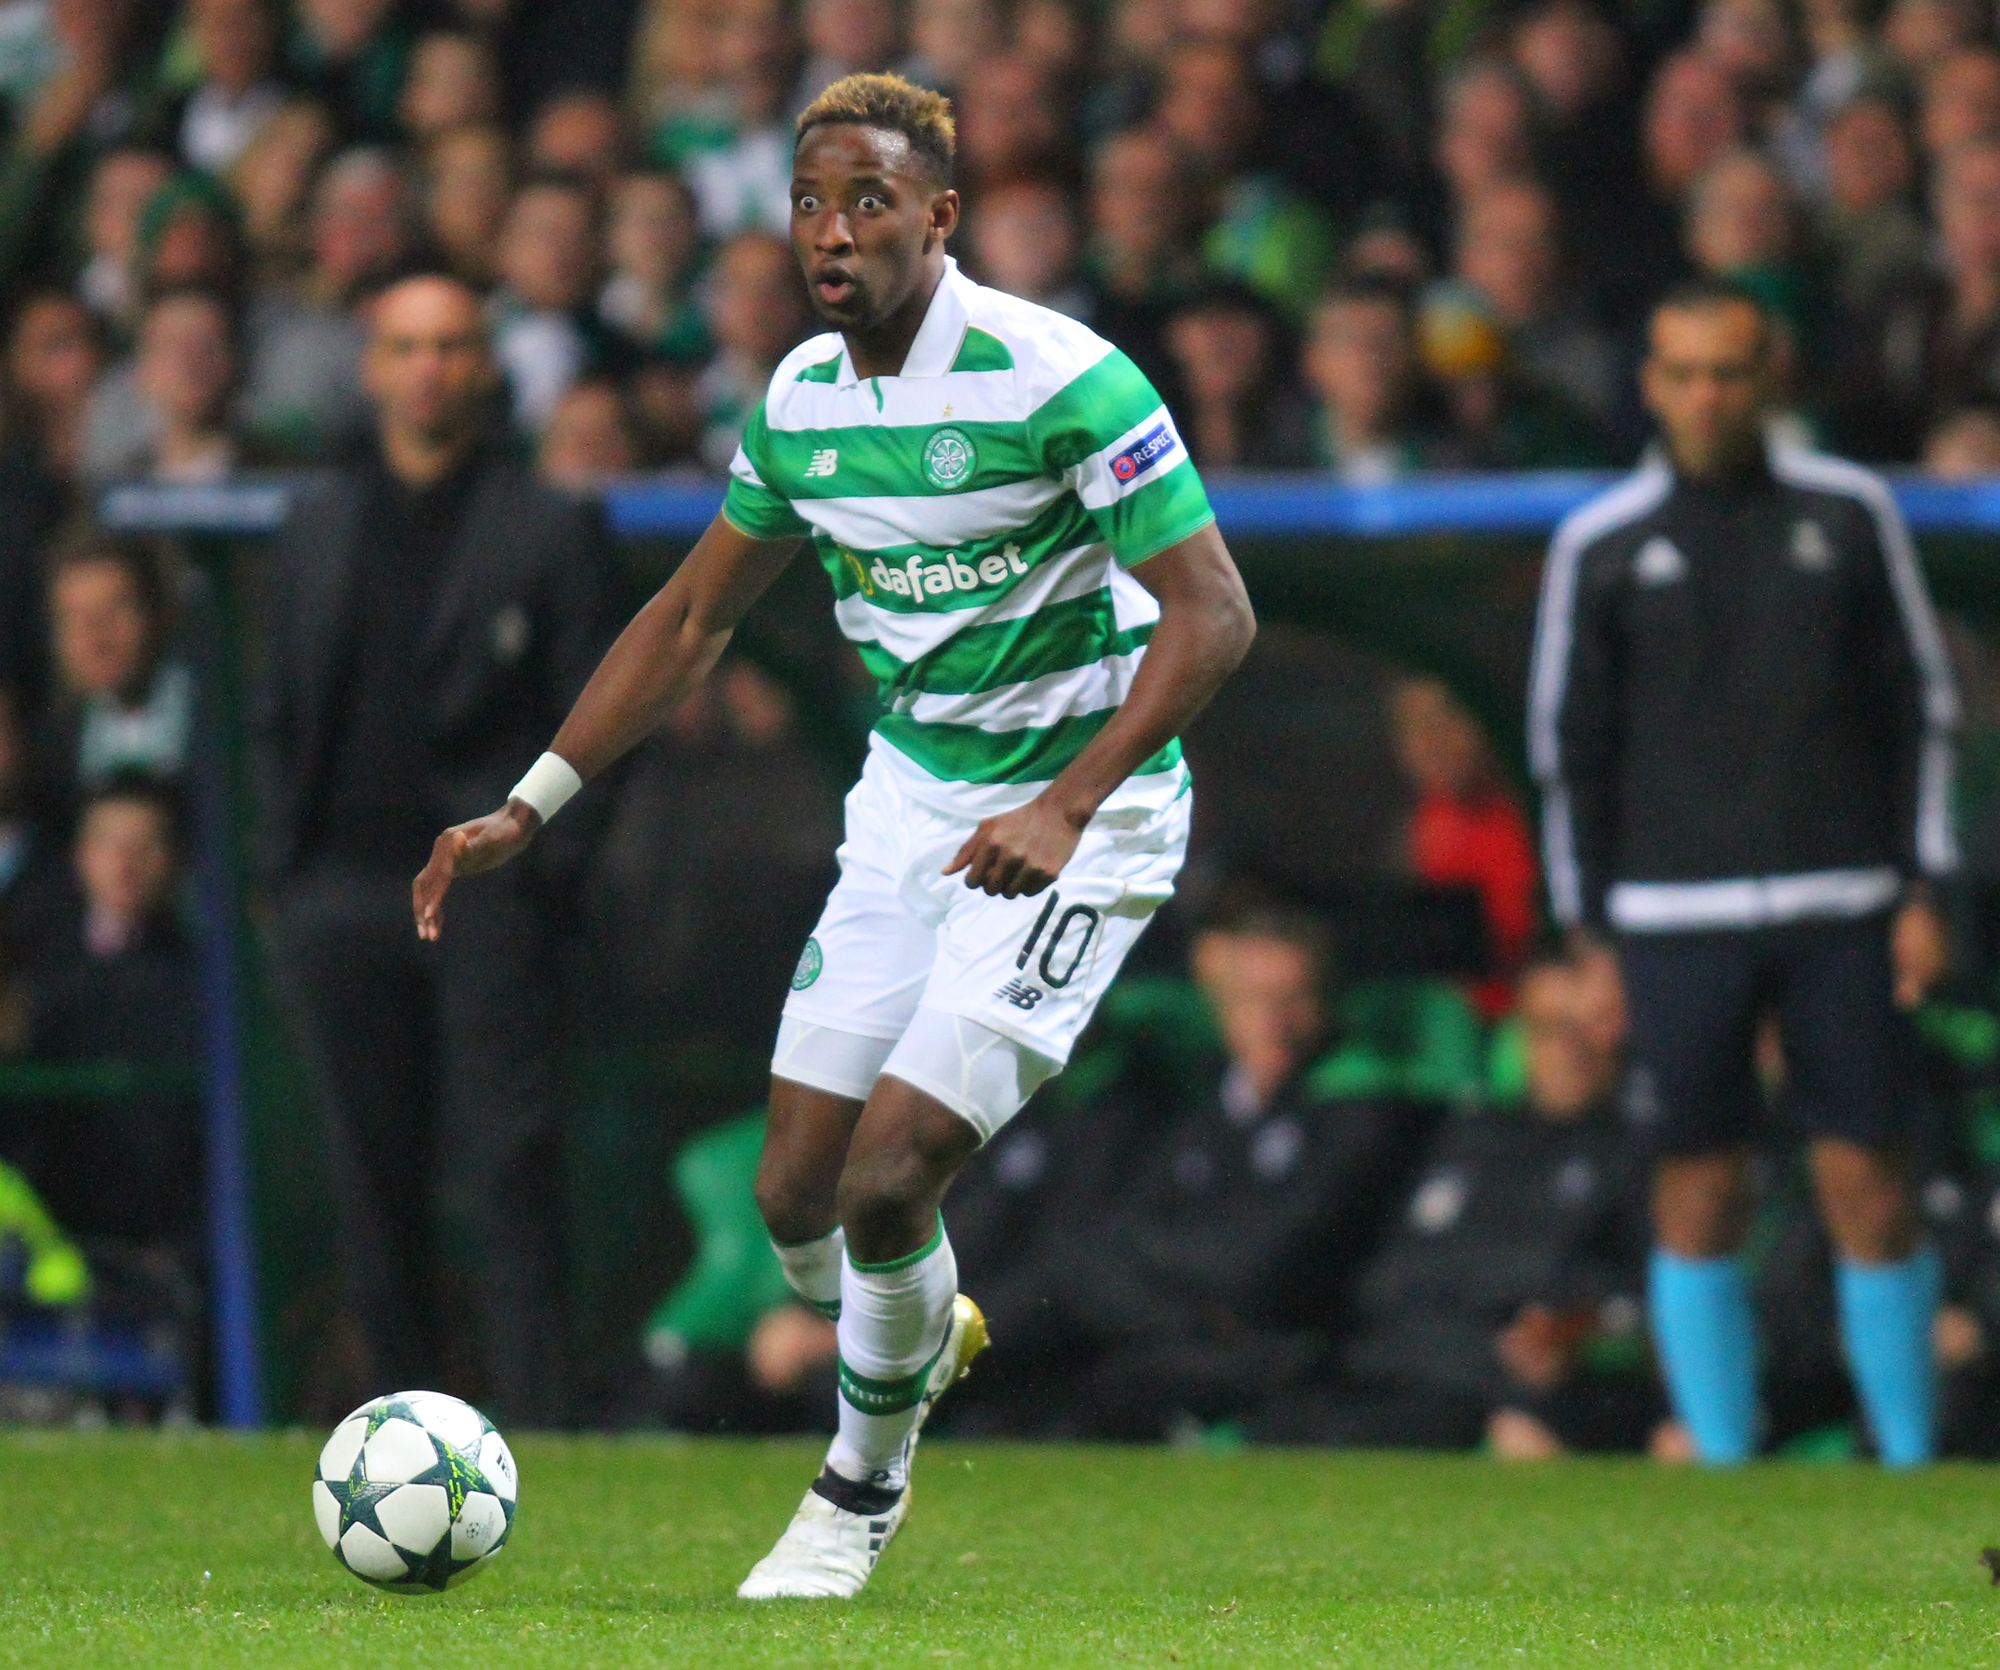 Brendan Rodgers Celtic have received no offers for Moussa